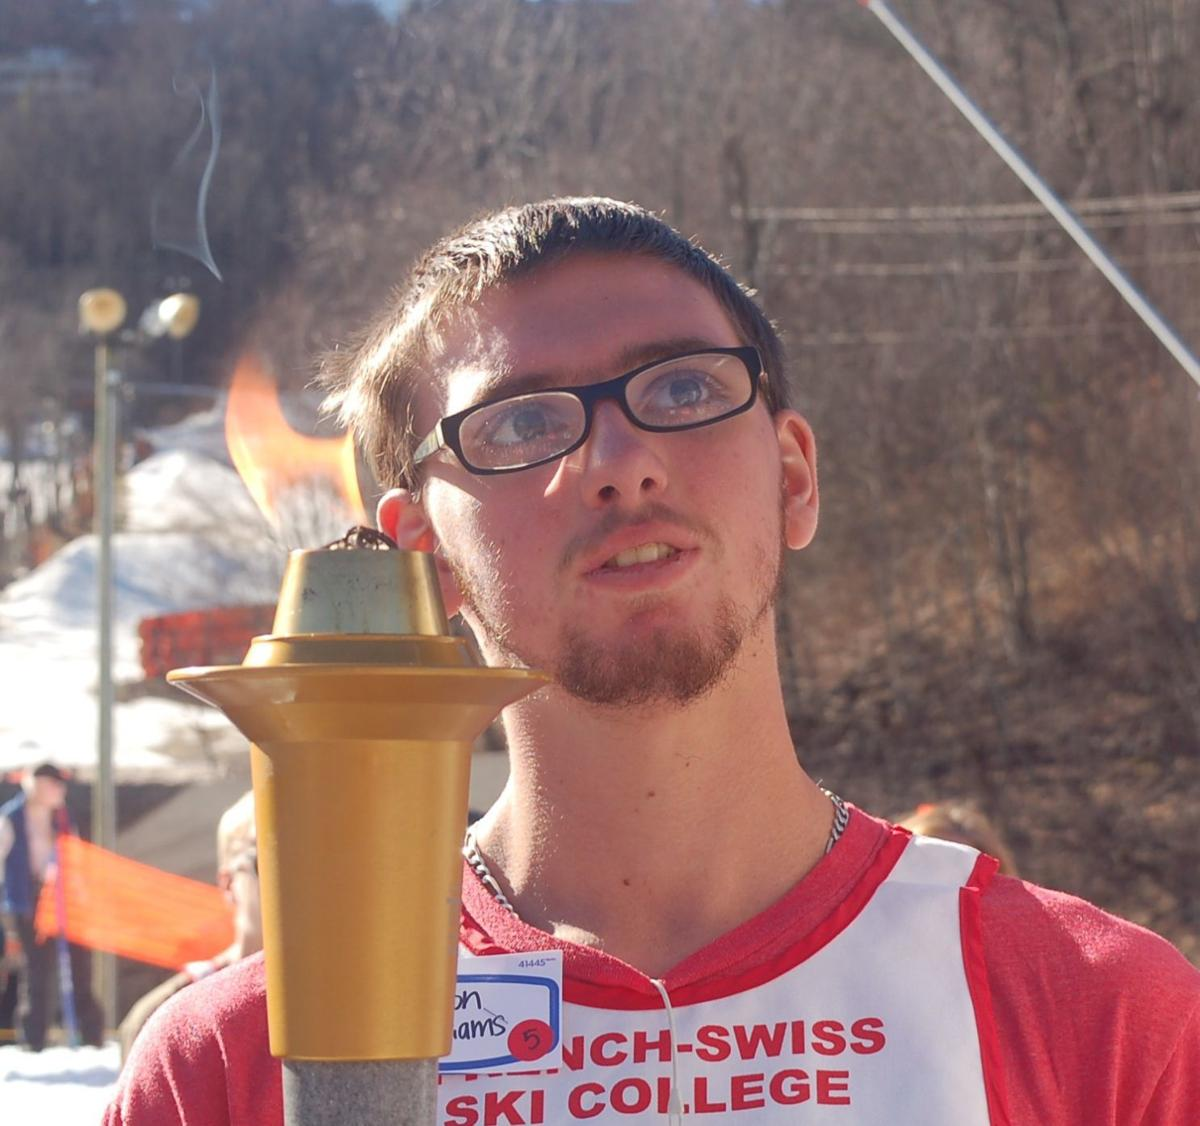 Williams with the torch